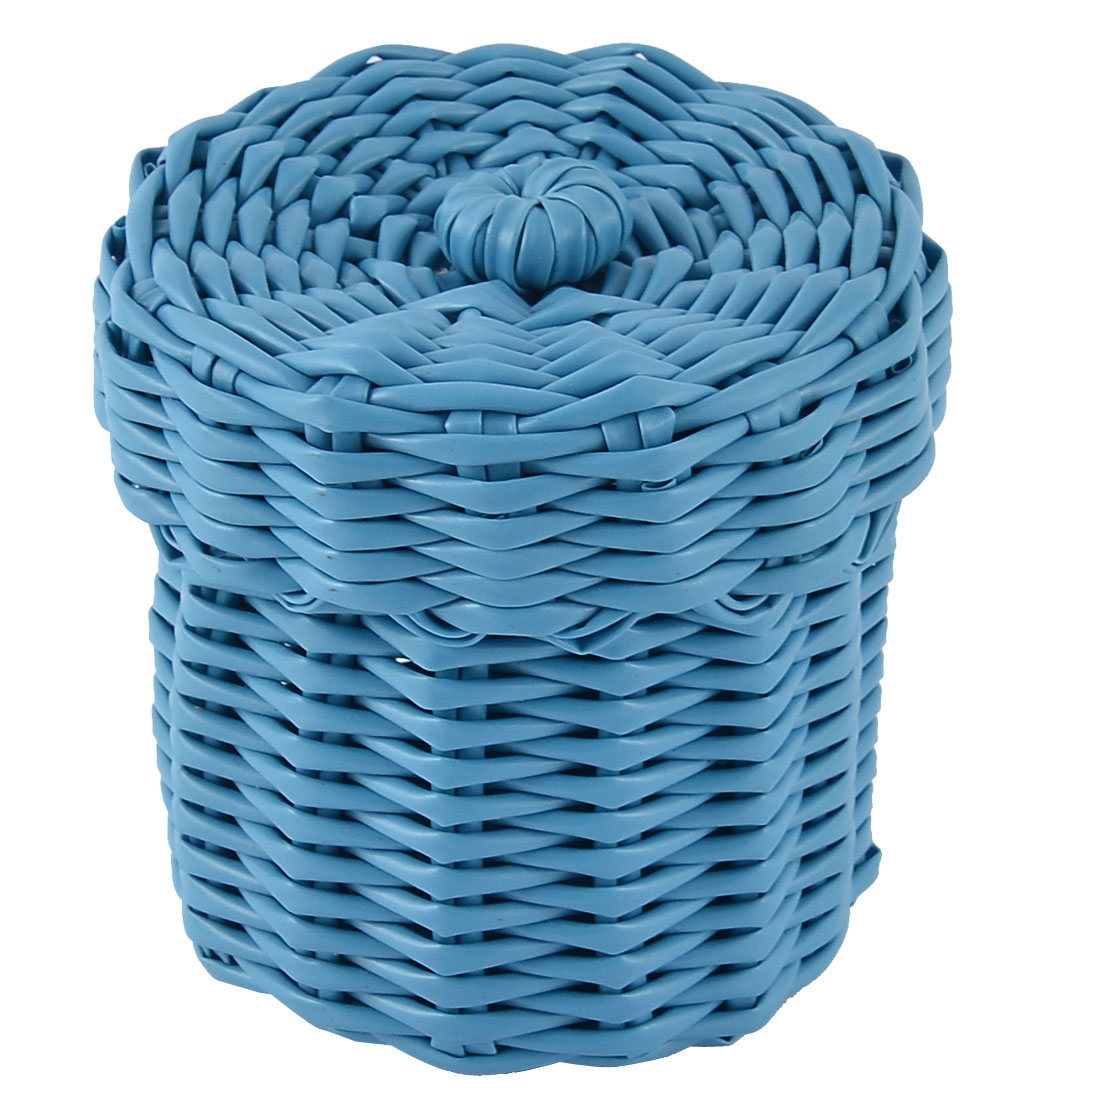 Home Office Plastic Knit Gathering Settle Storage Box Case Basket w Lid Blue